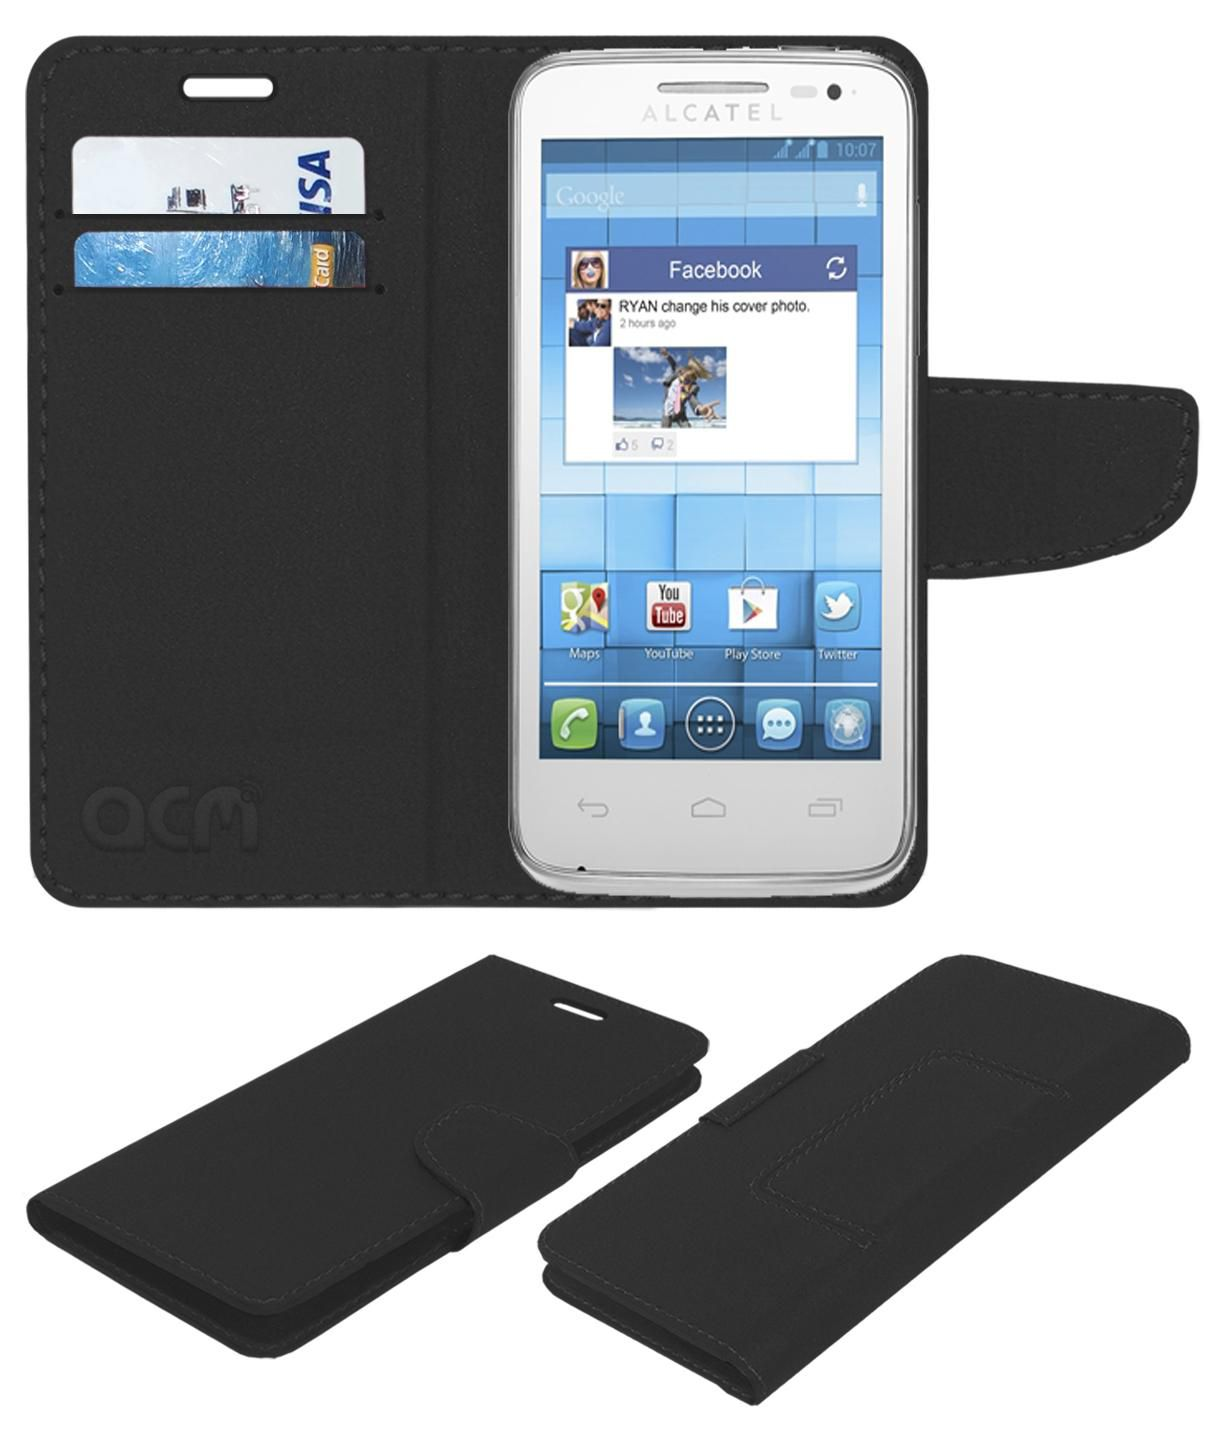 Alcatel Onetouch Inspire 2 Flip Cover by ACM - Black